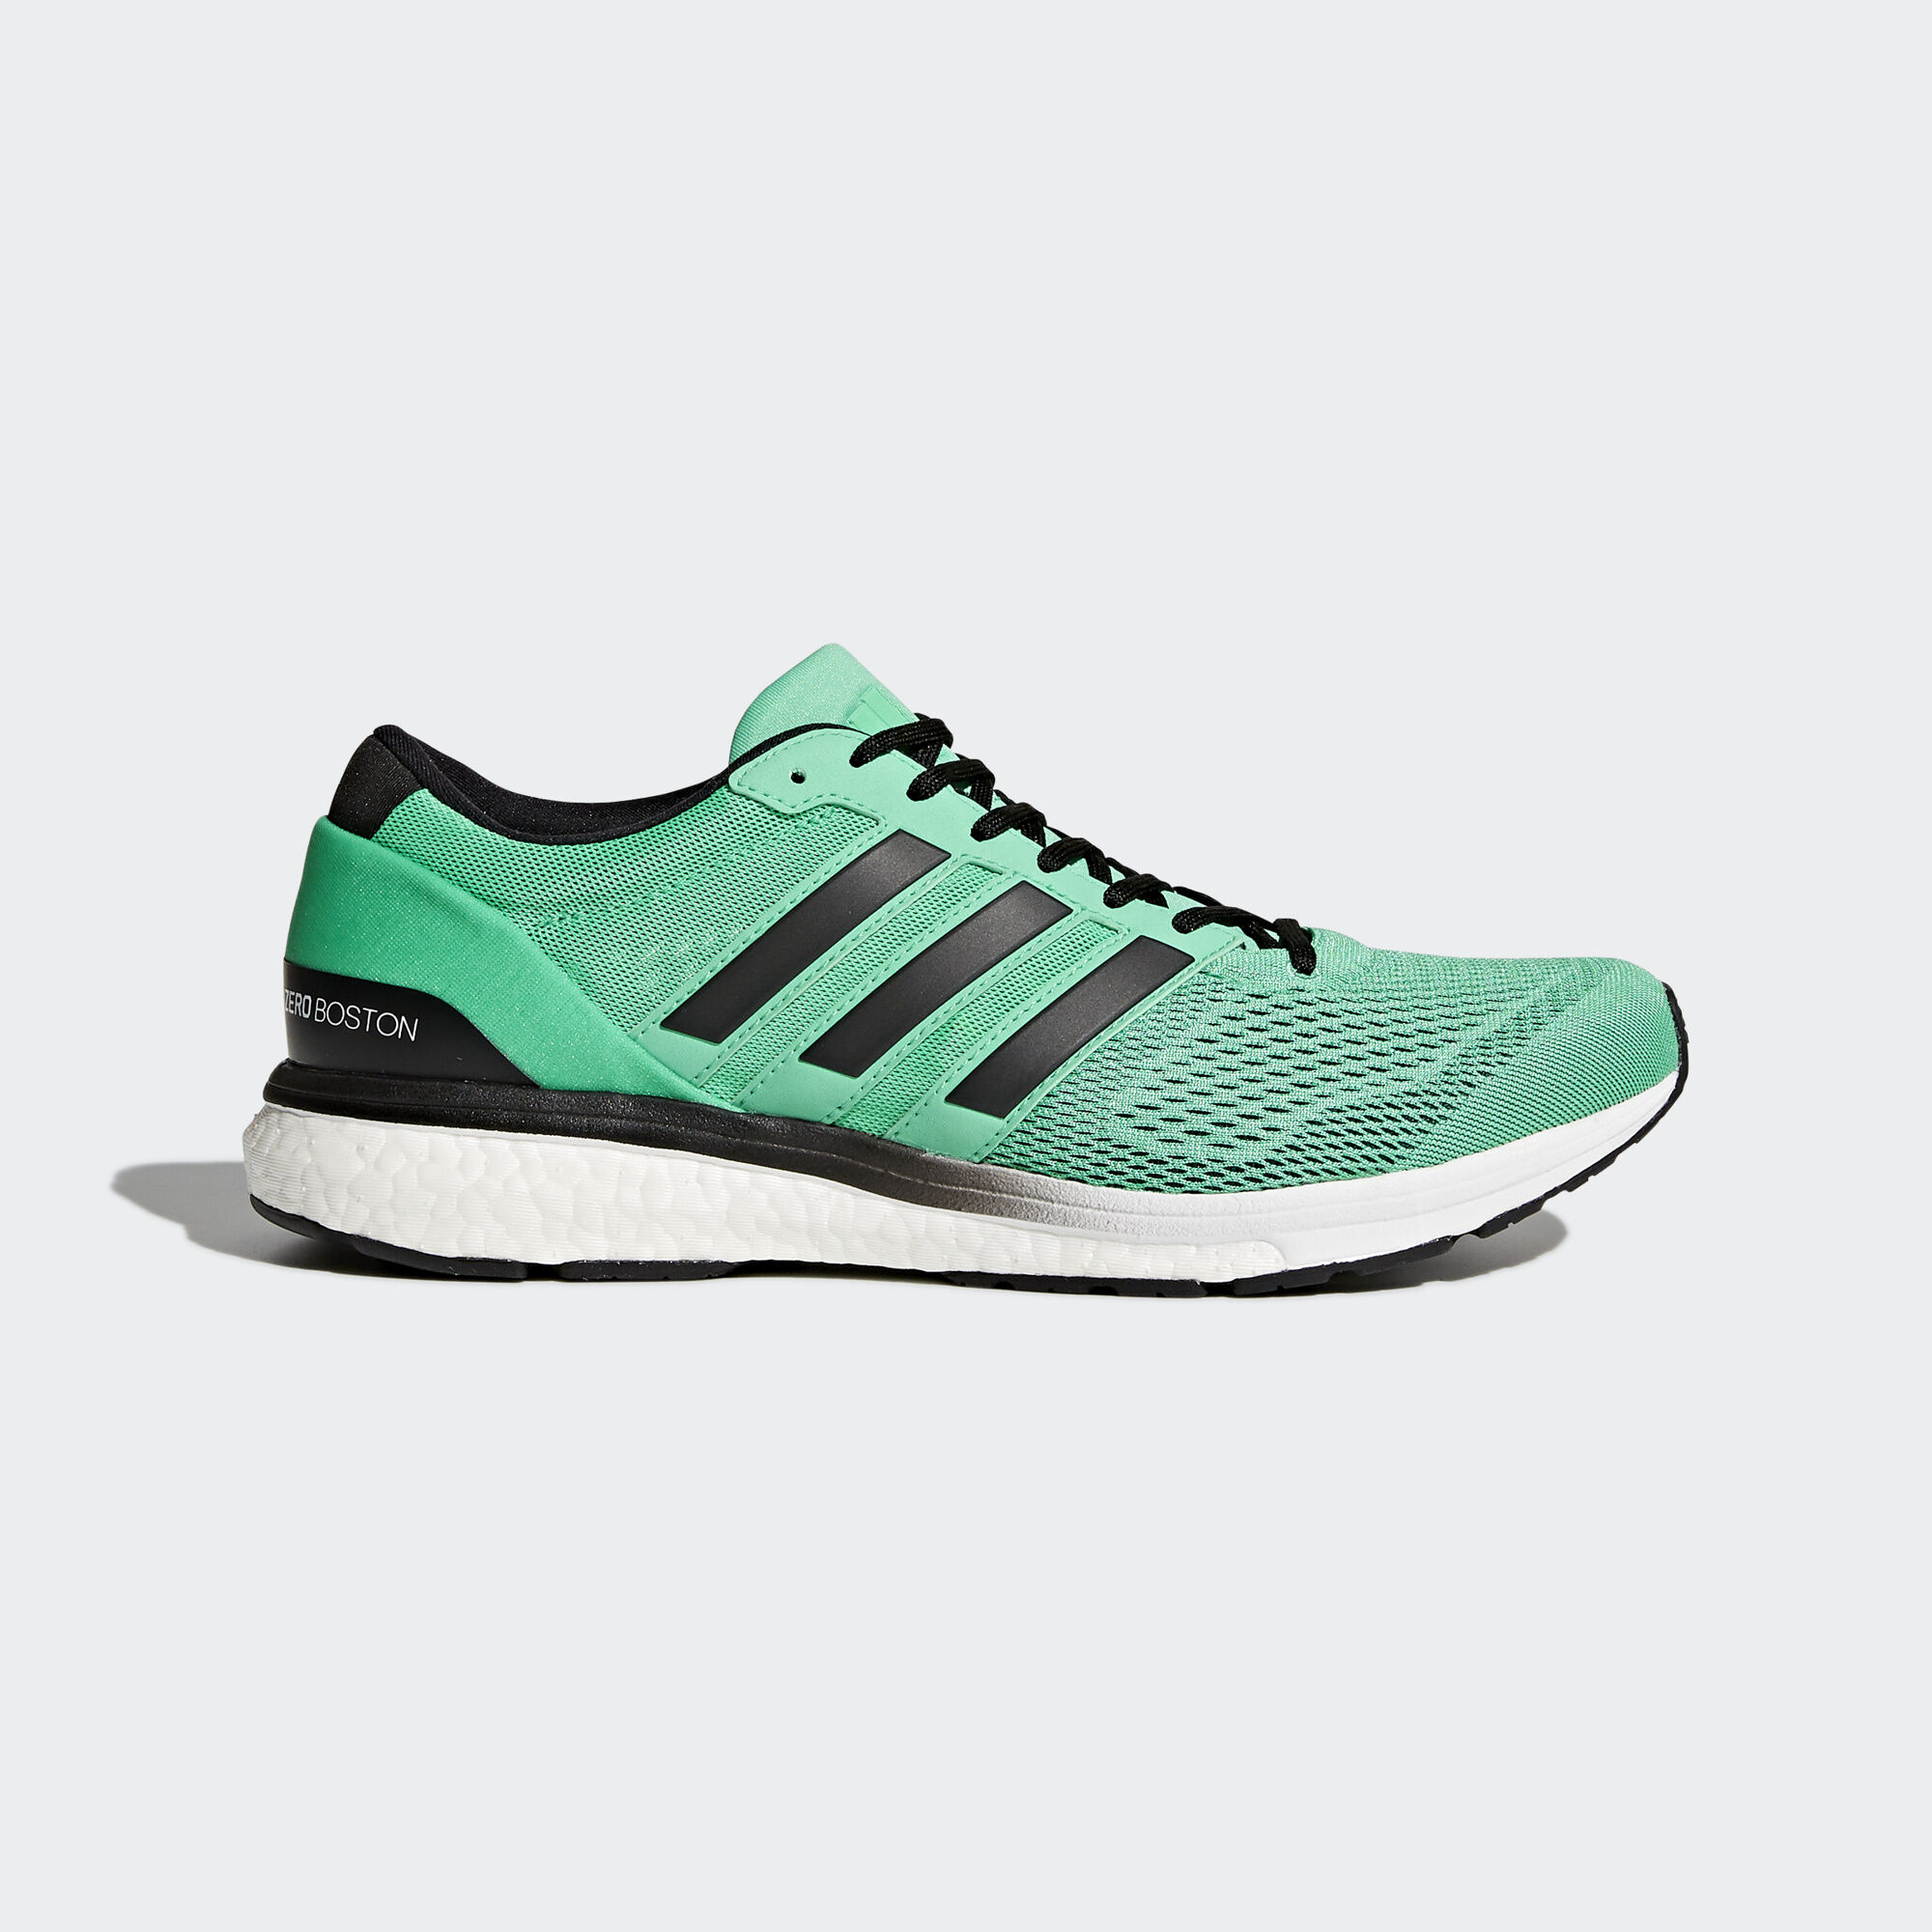 Adidas Zapatilla adizero Boston 6